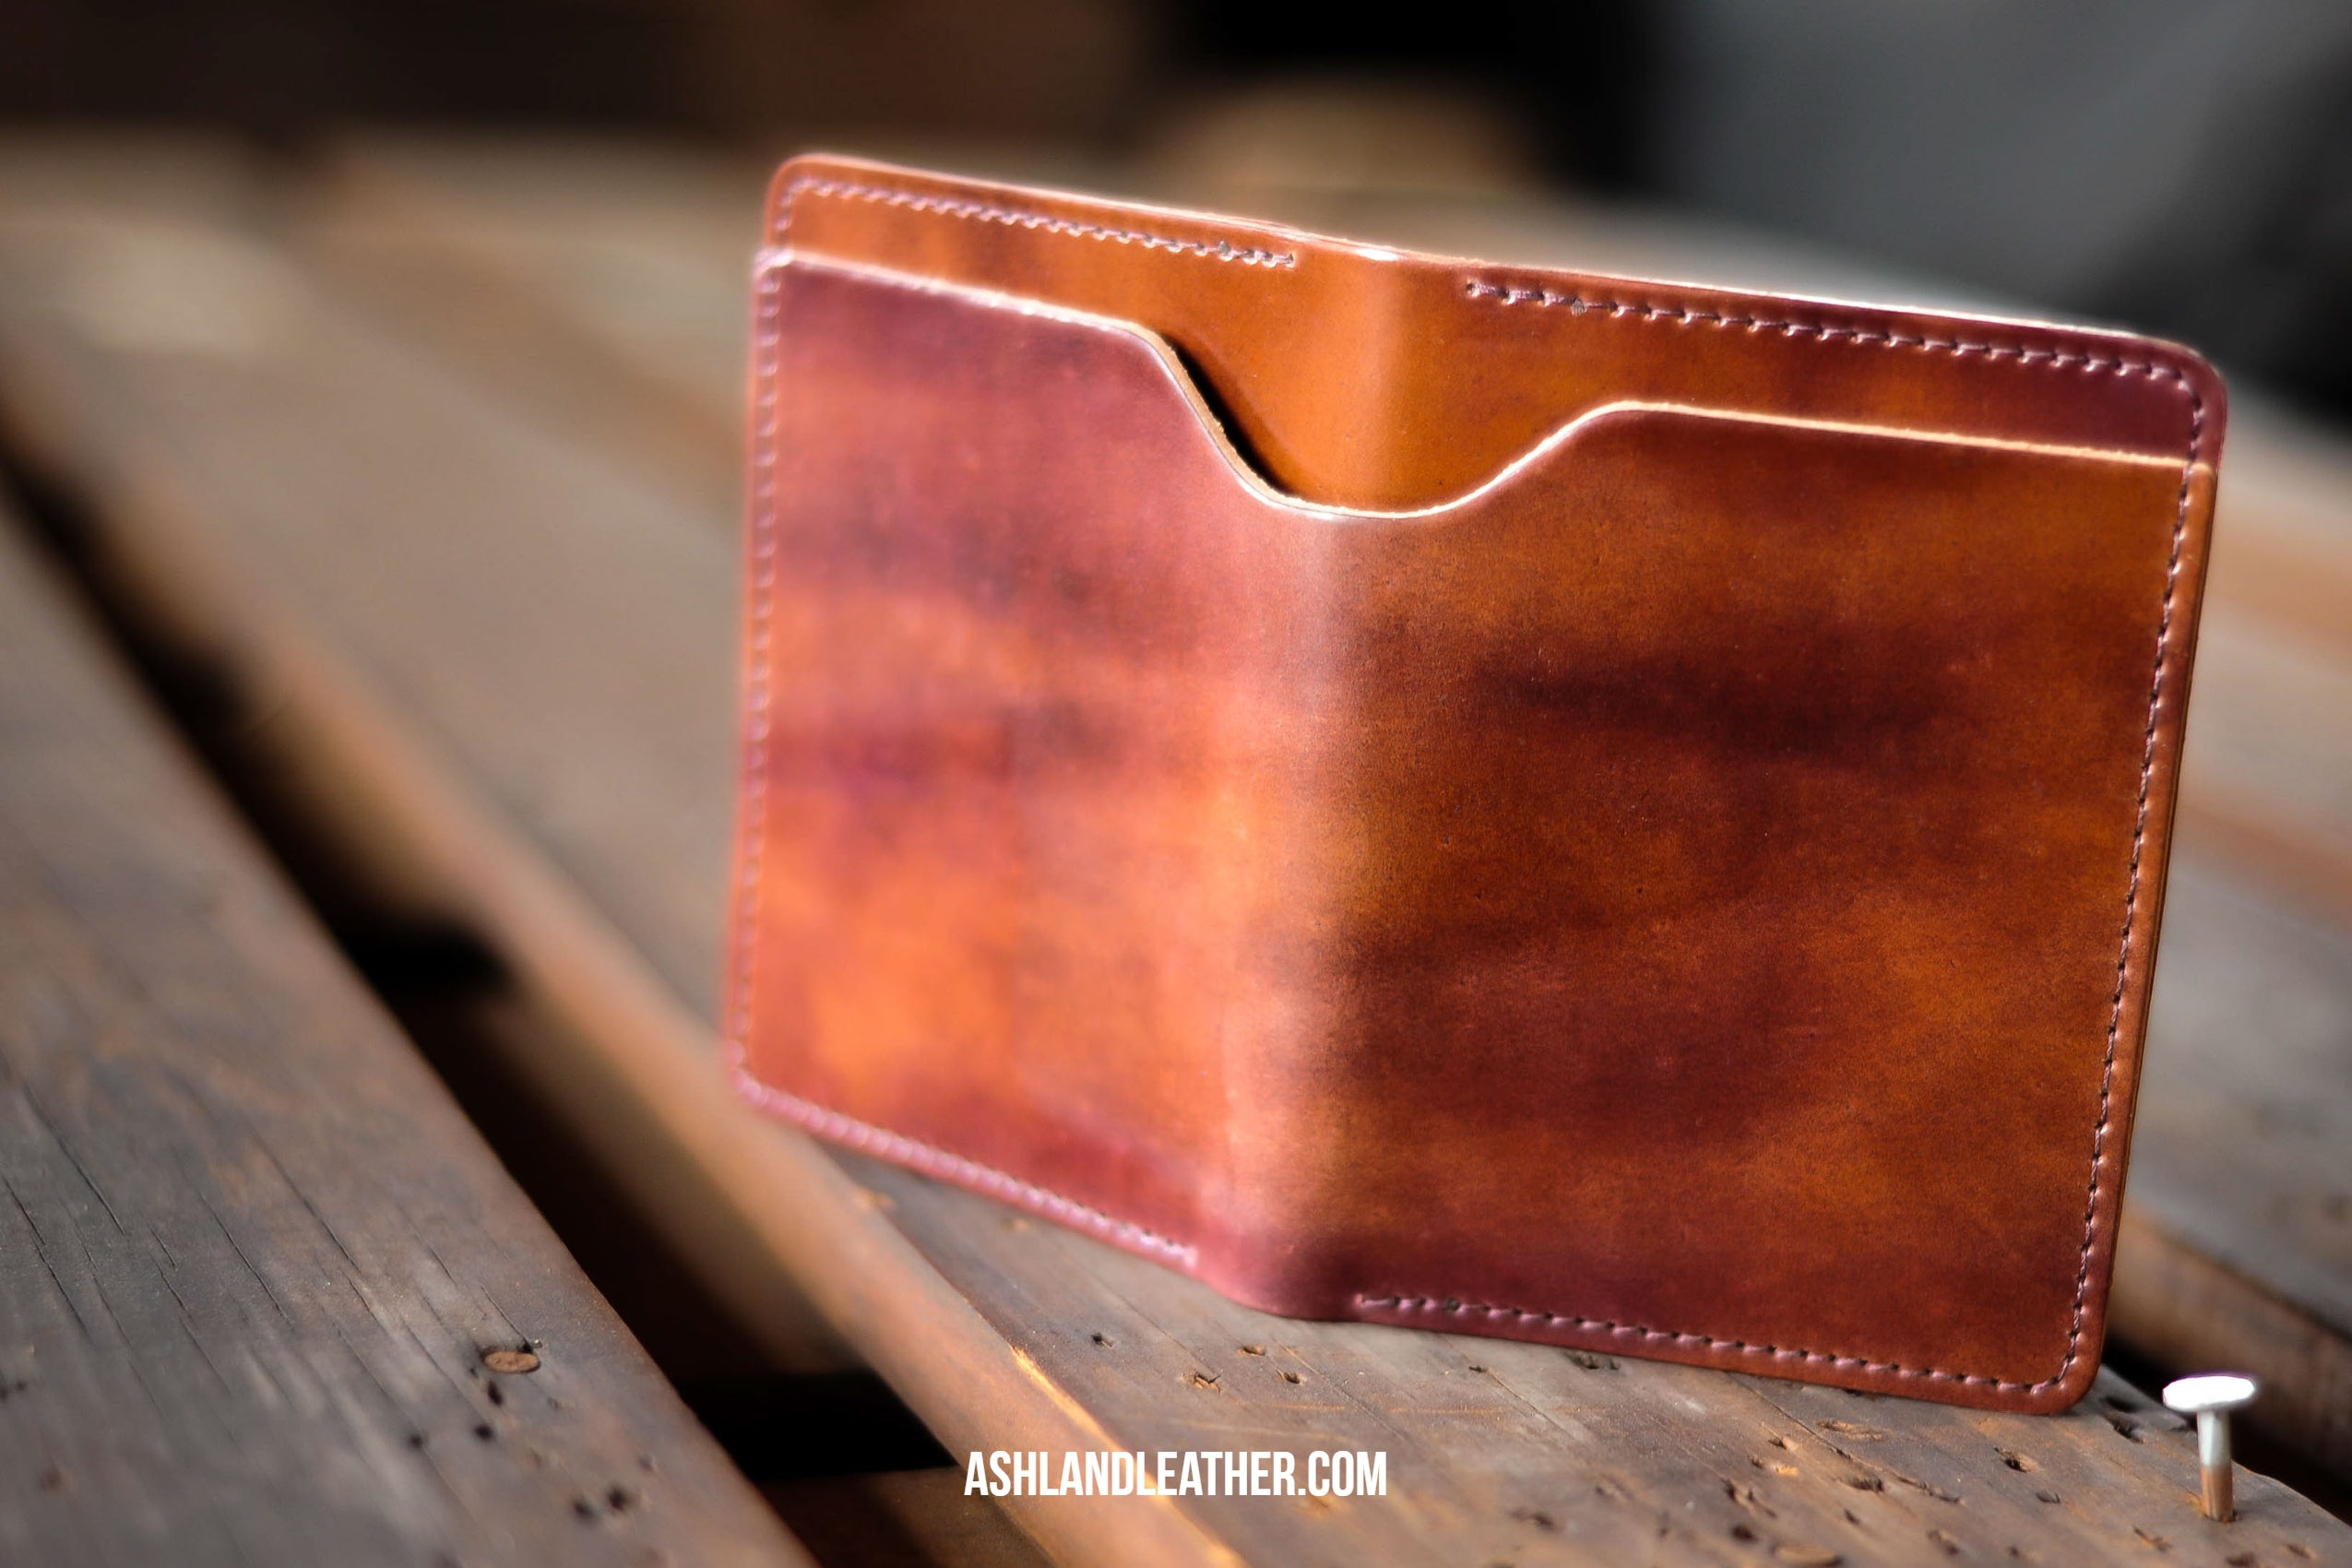 Ashland leather Fat Herbie in color #8 marbled shell cordovan